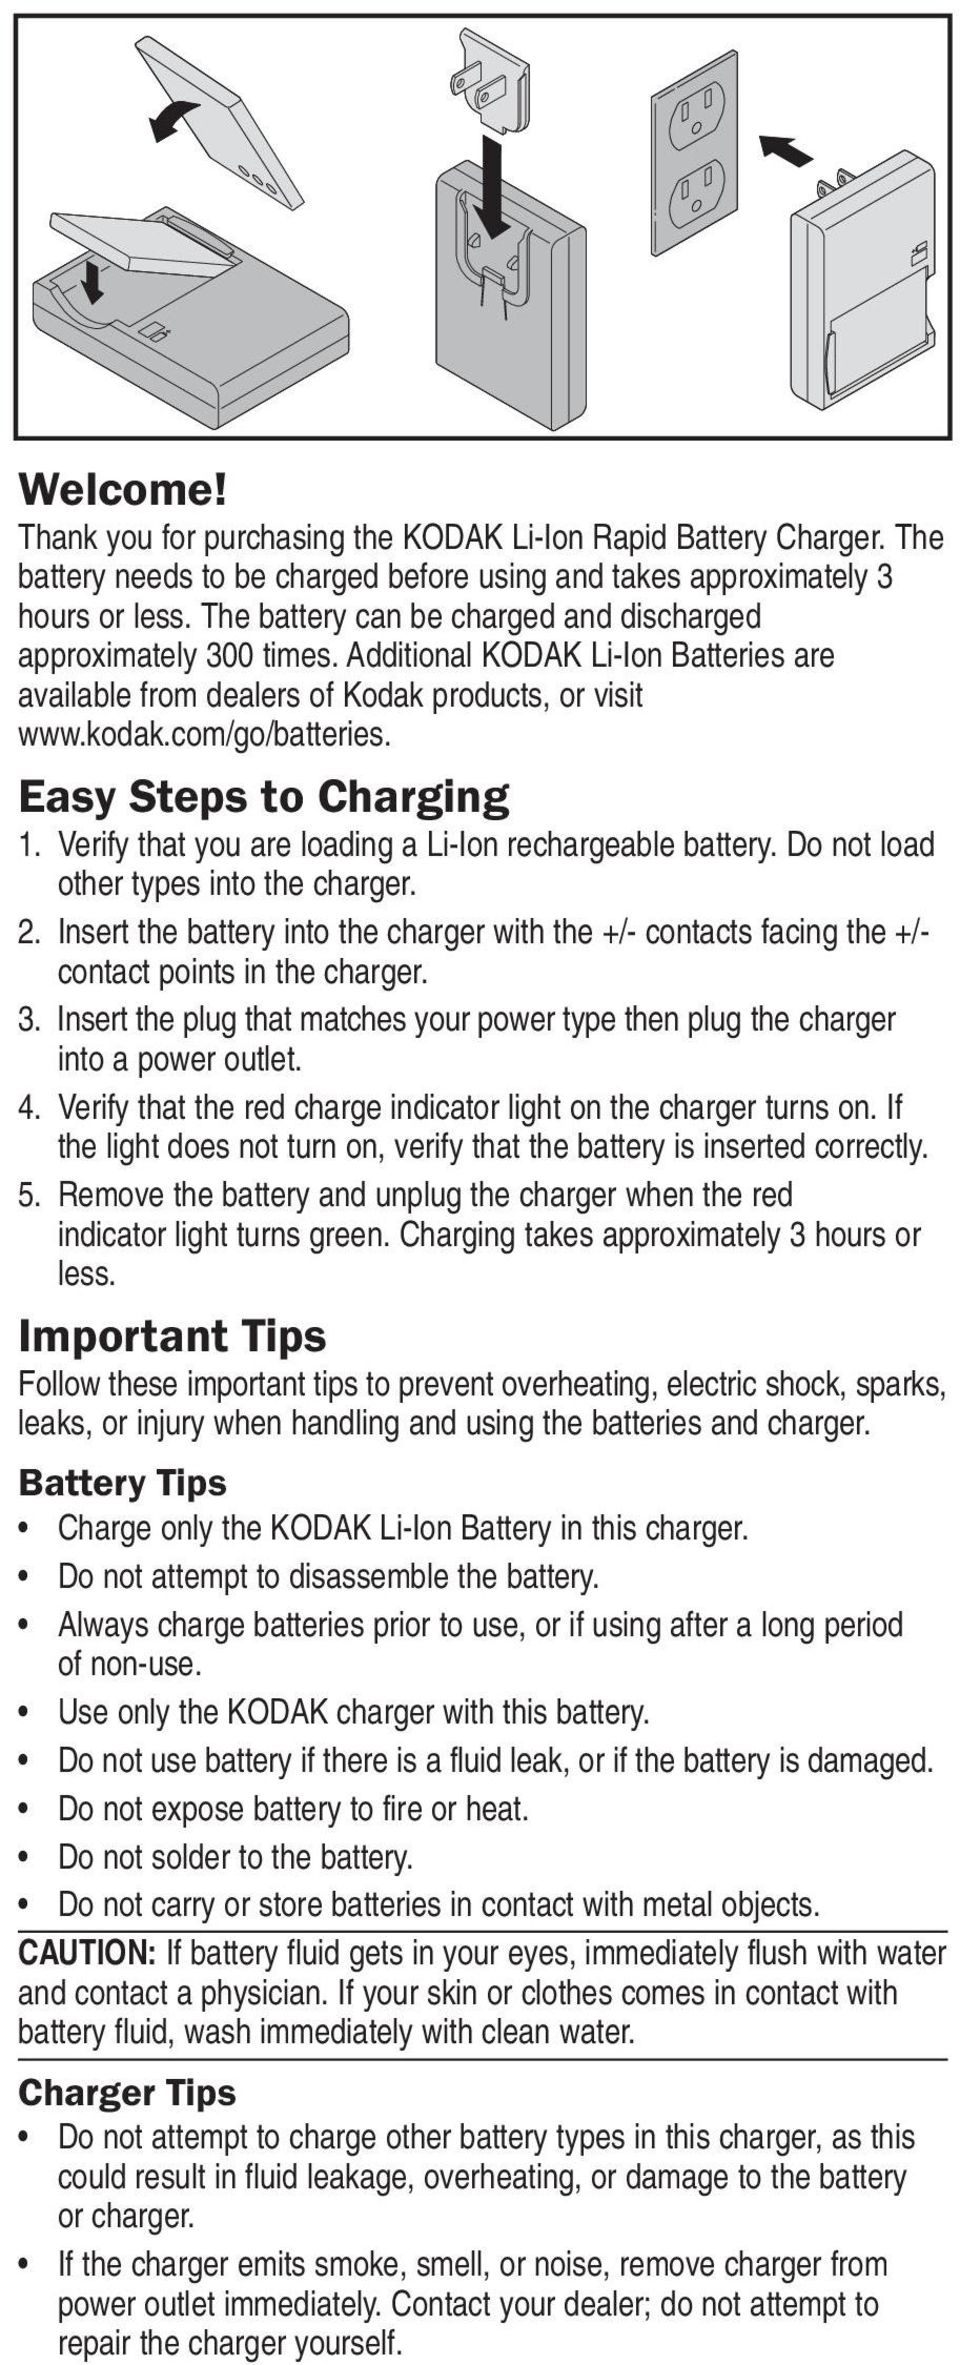 Easy Steps to Charging 1. Verify that you are loading a Li-Ion rechargeable battery. Do not load other types into the charger. 2.